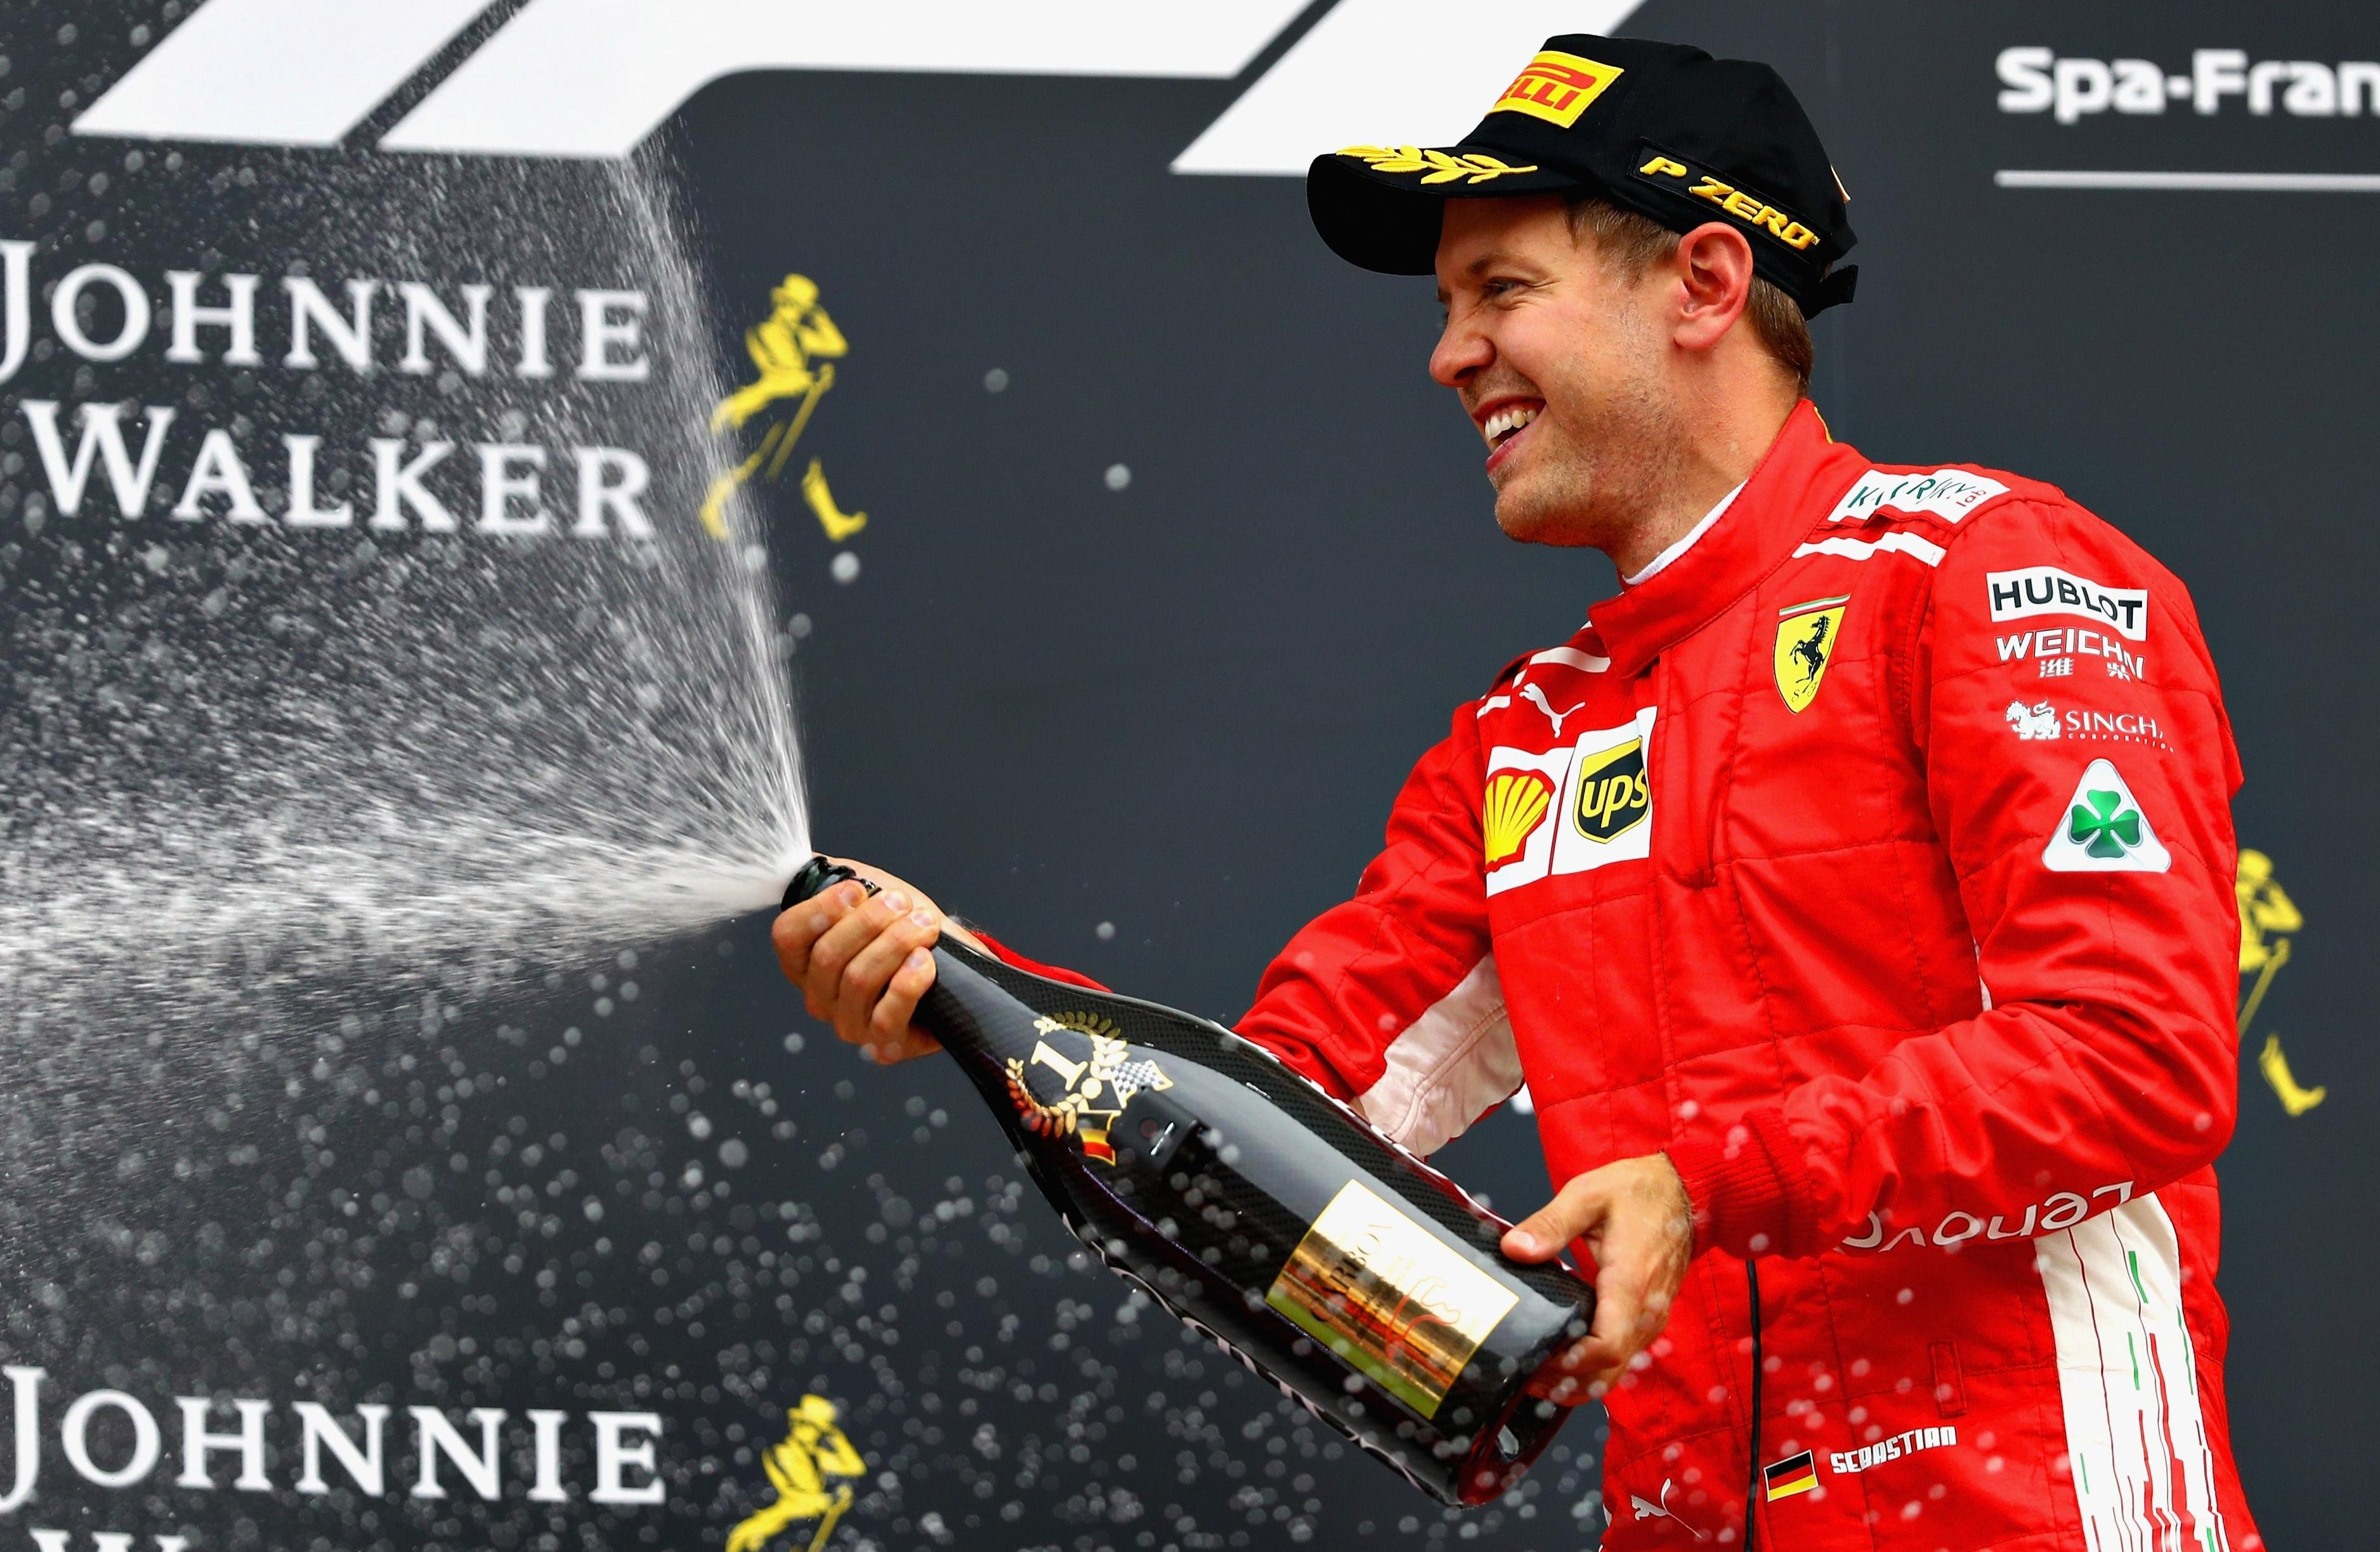 The German heads into the Italian GP on the back of a win in Belgium